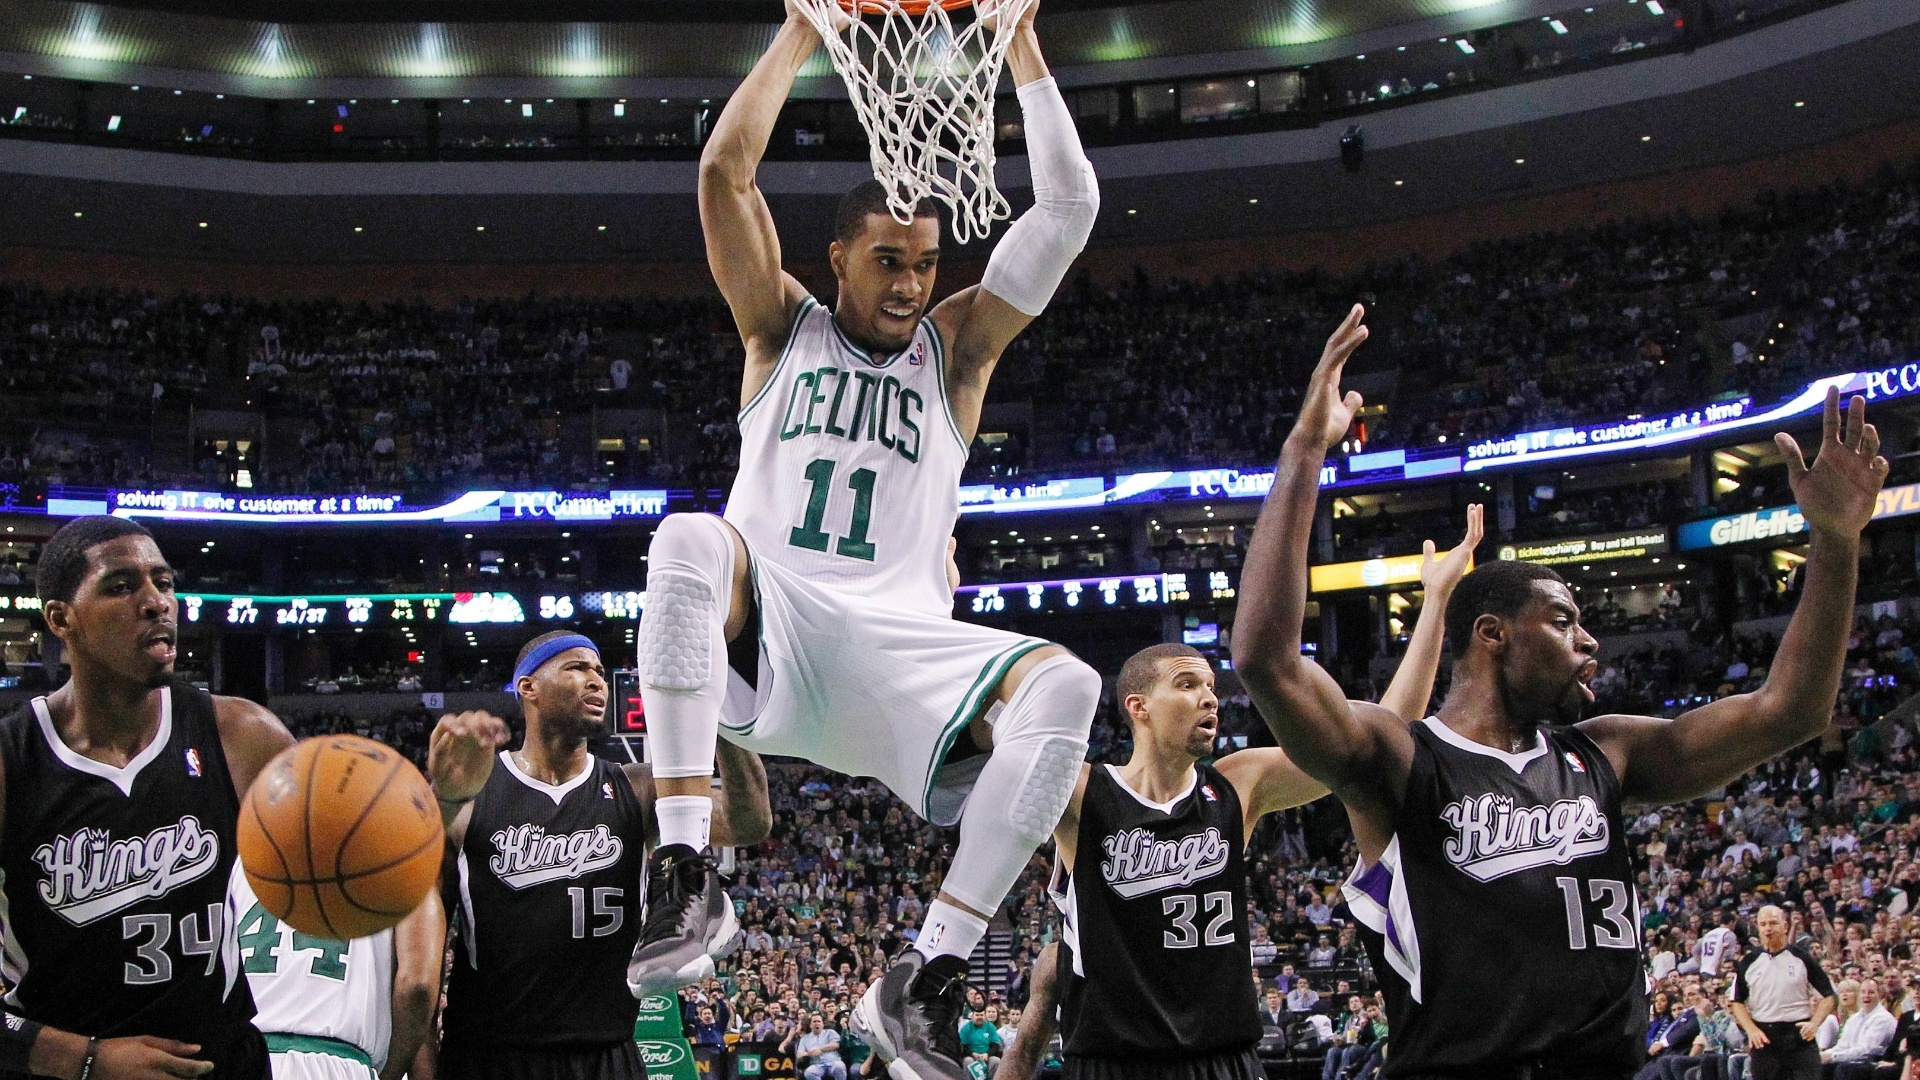 30.jan.2013 - Courtney Lee substituiu o contundido Rajon Rondo e deu bela enterrada na vitória dos Celtics sobre os Kings